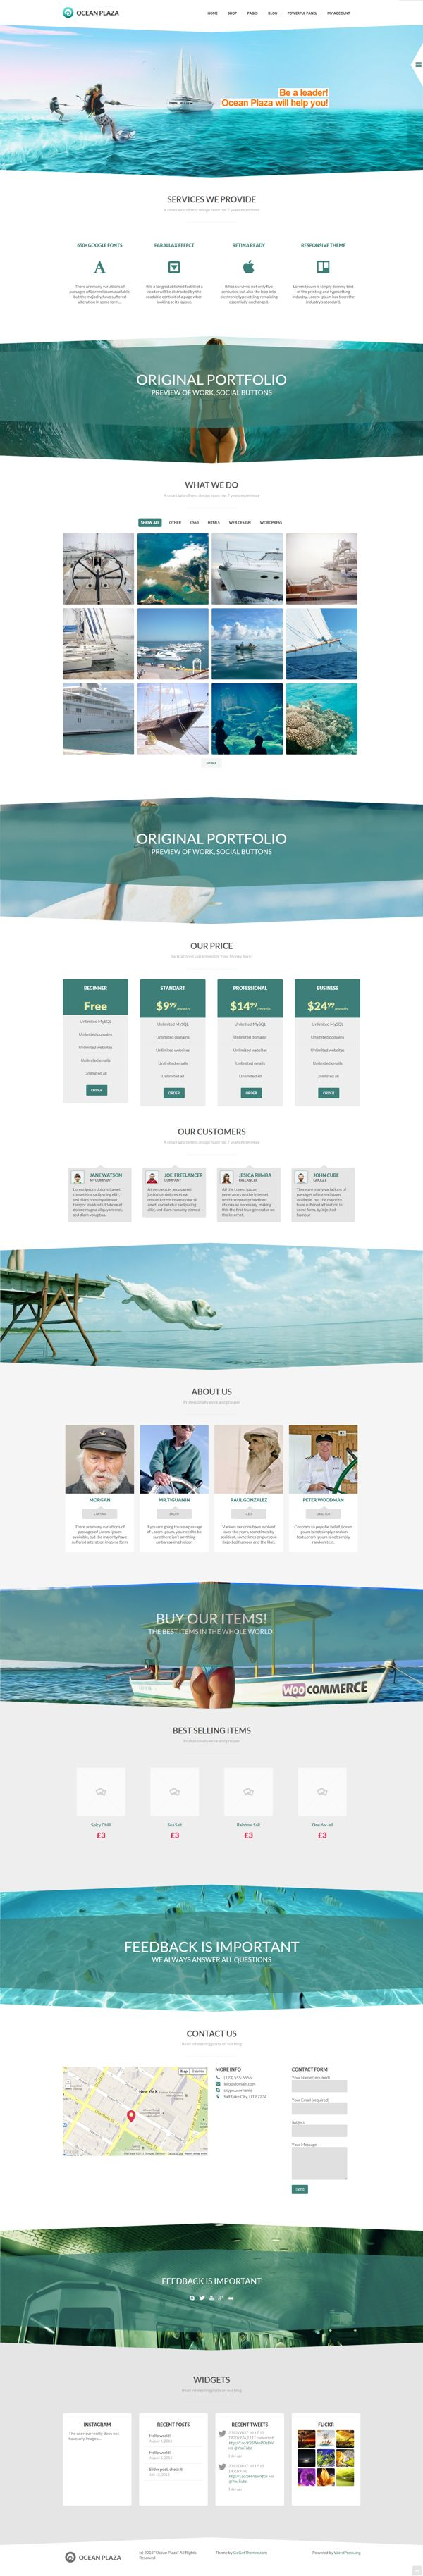 OceanPlaza WordPress Parallax Theme by Zizaza - design ocean , via Behance